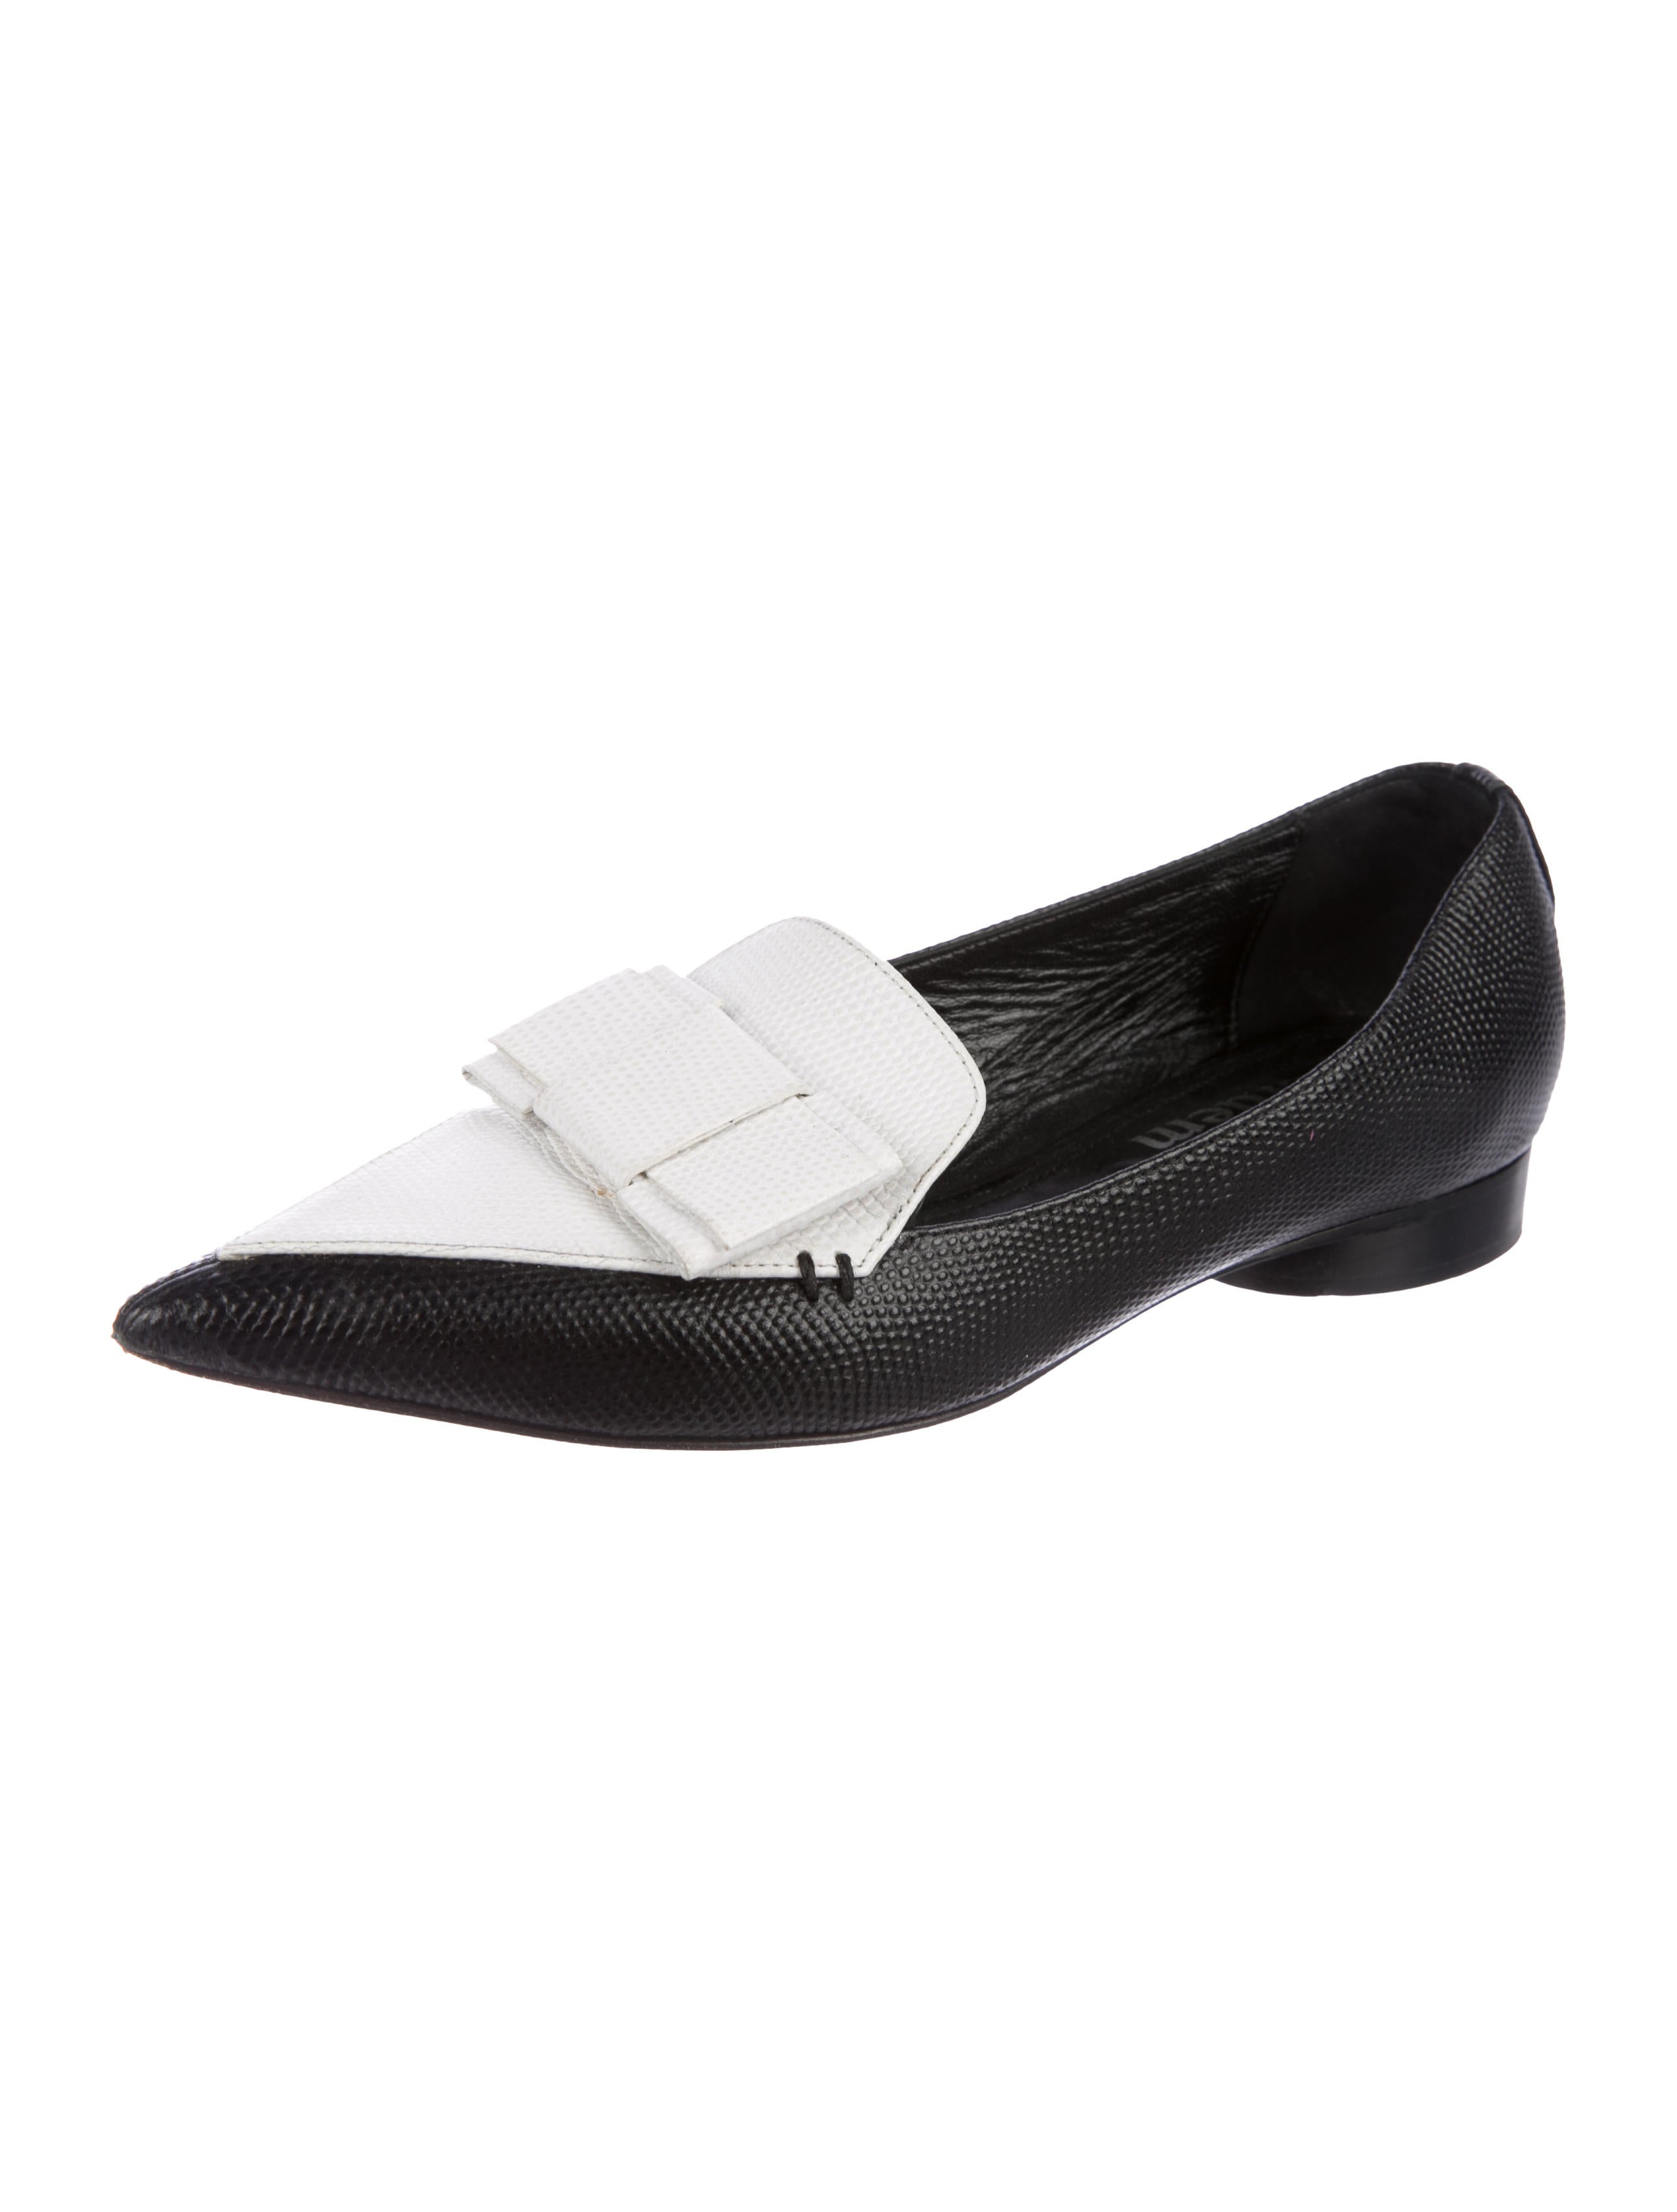 Erdem Nicholas Kirkwood x Embossed Pointed-Toe Loafers outlet footaction looking for sale online cheap pay with visa s717MfjWk7